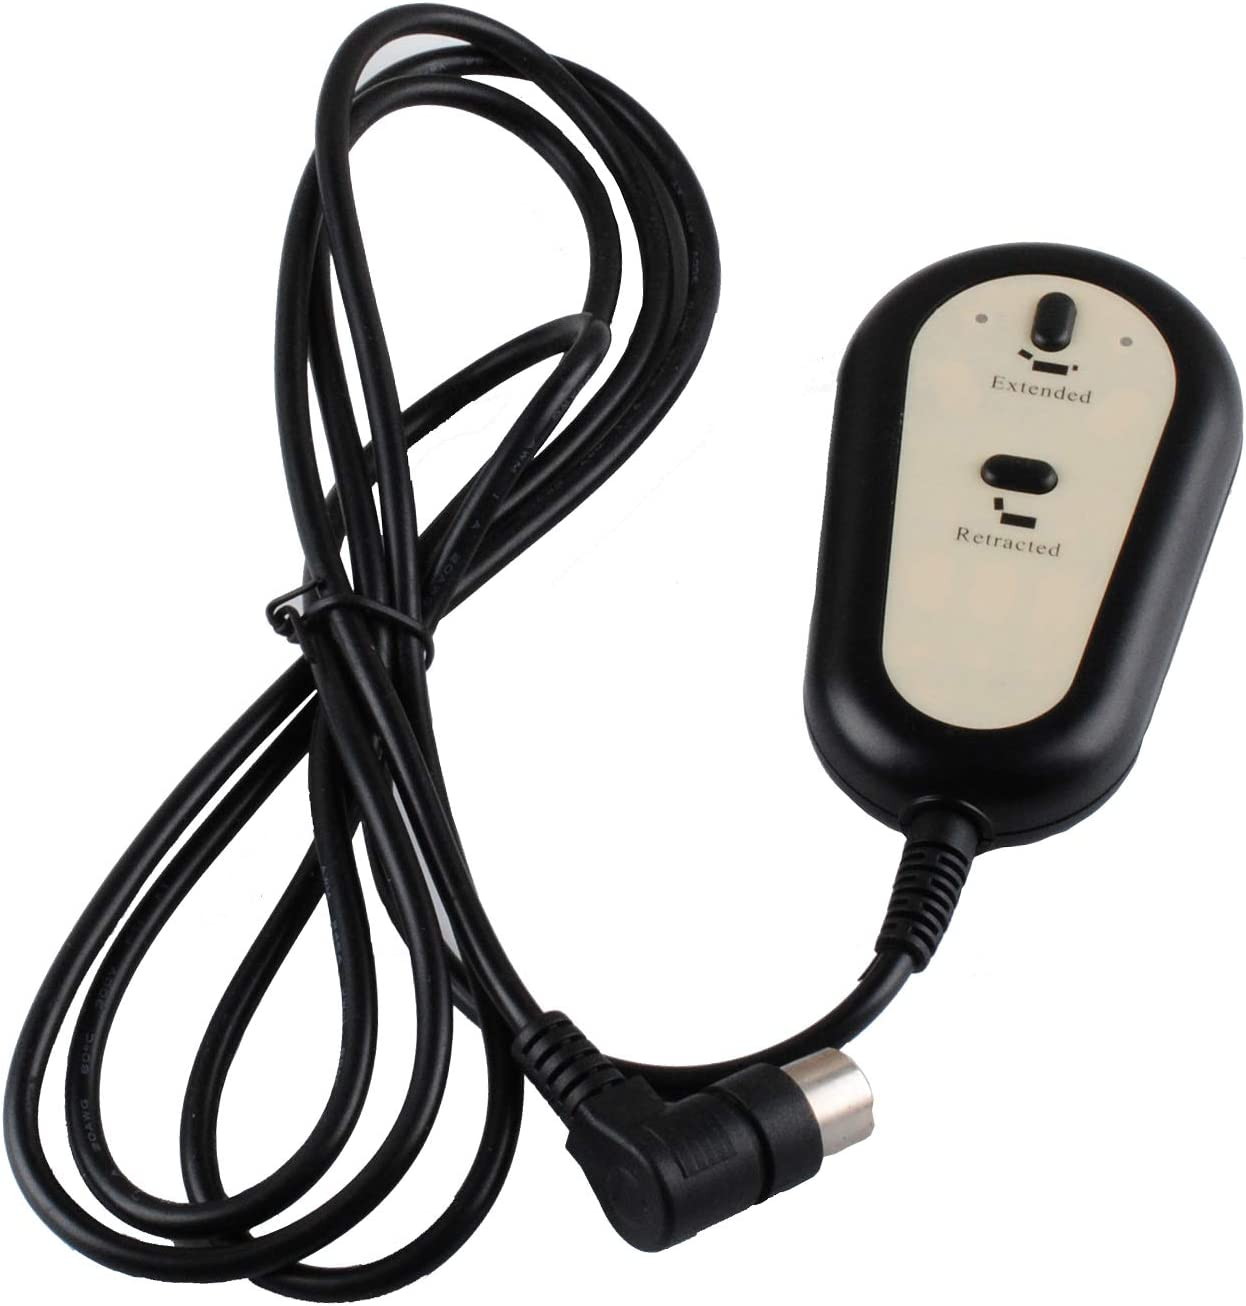 Podoy Recliner Controller Compatible with Dewert Okin Lift Chair Remote Lighted Hand Control 2 Button Round 5 Pins HC-6022 Replacement